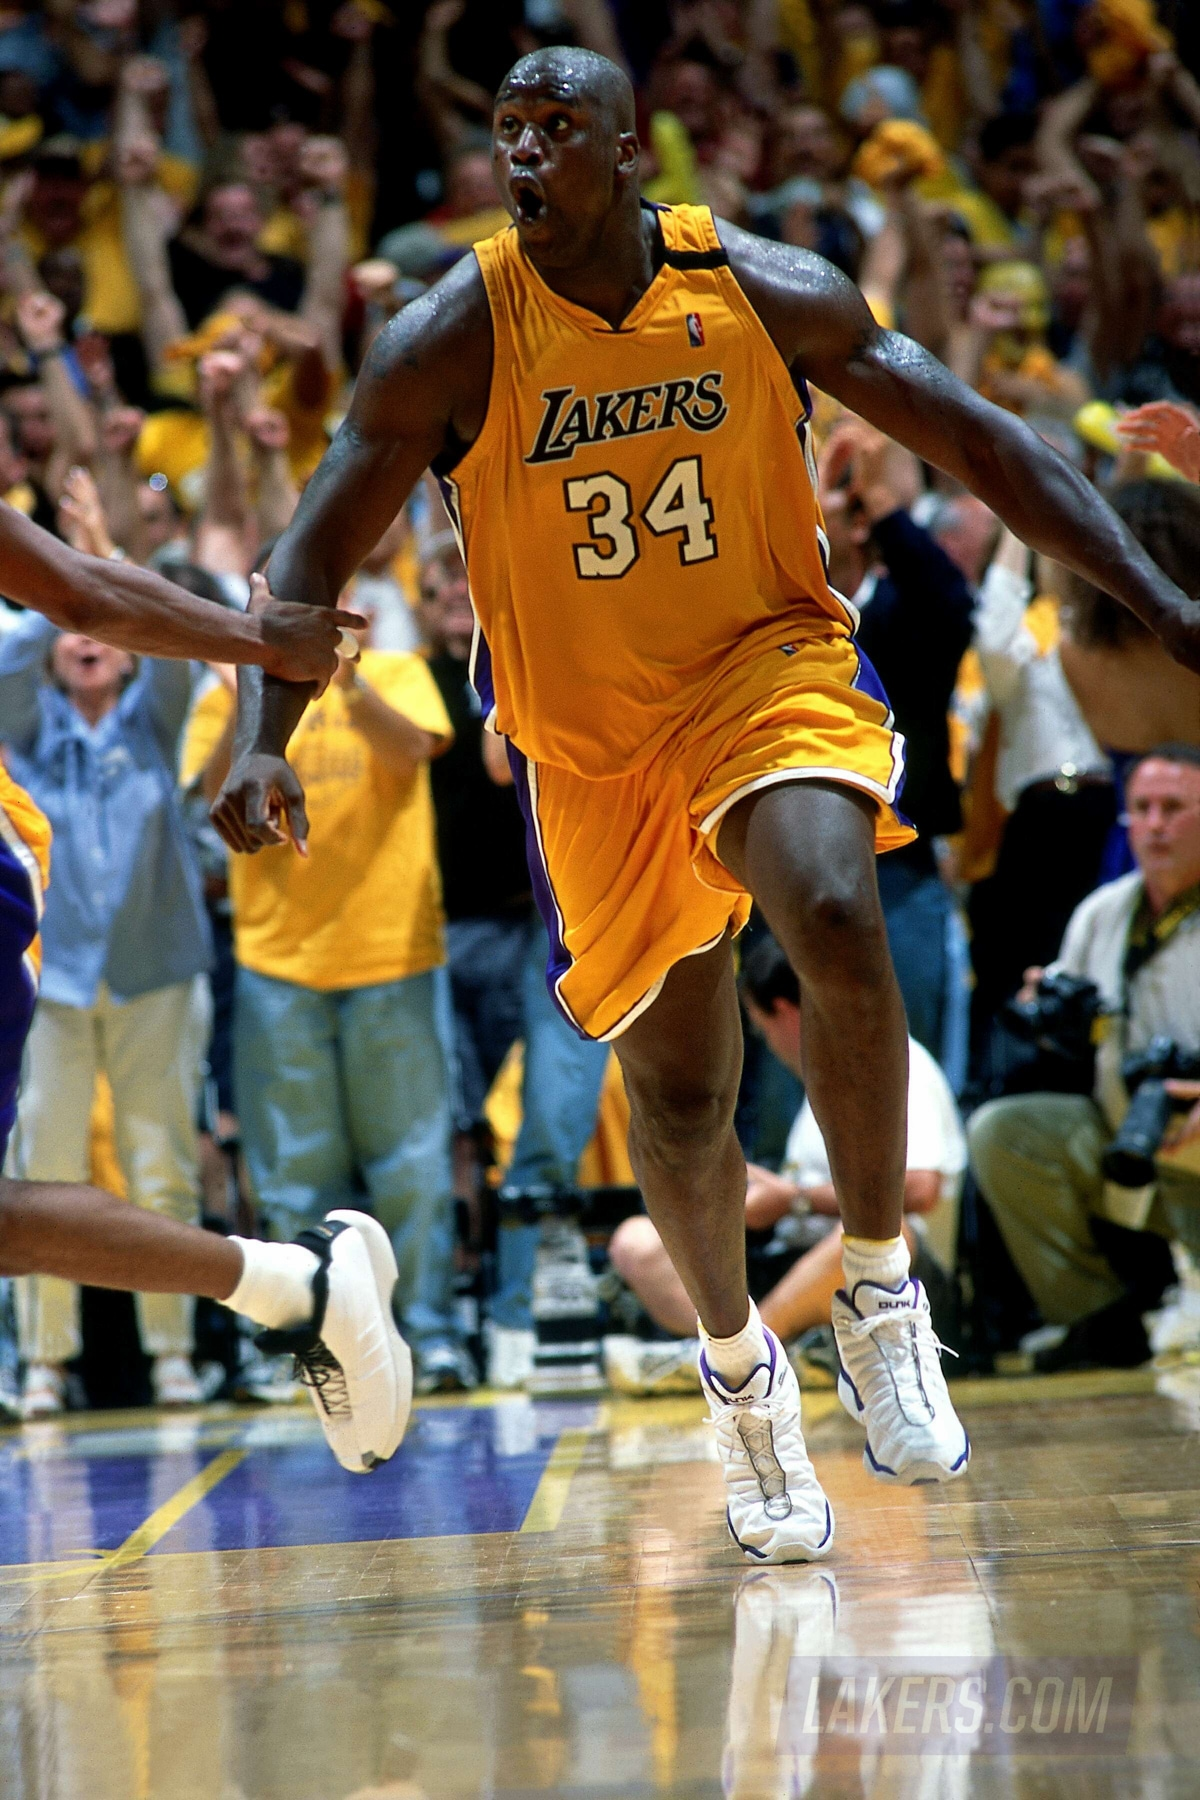 Lakers Alumni Shaquille O Neal